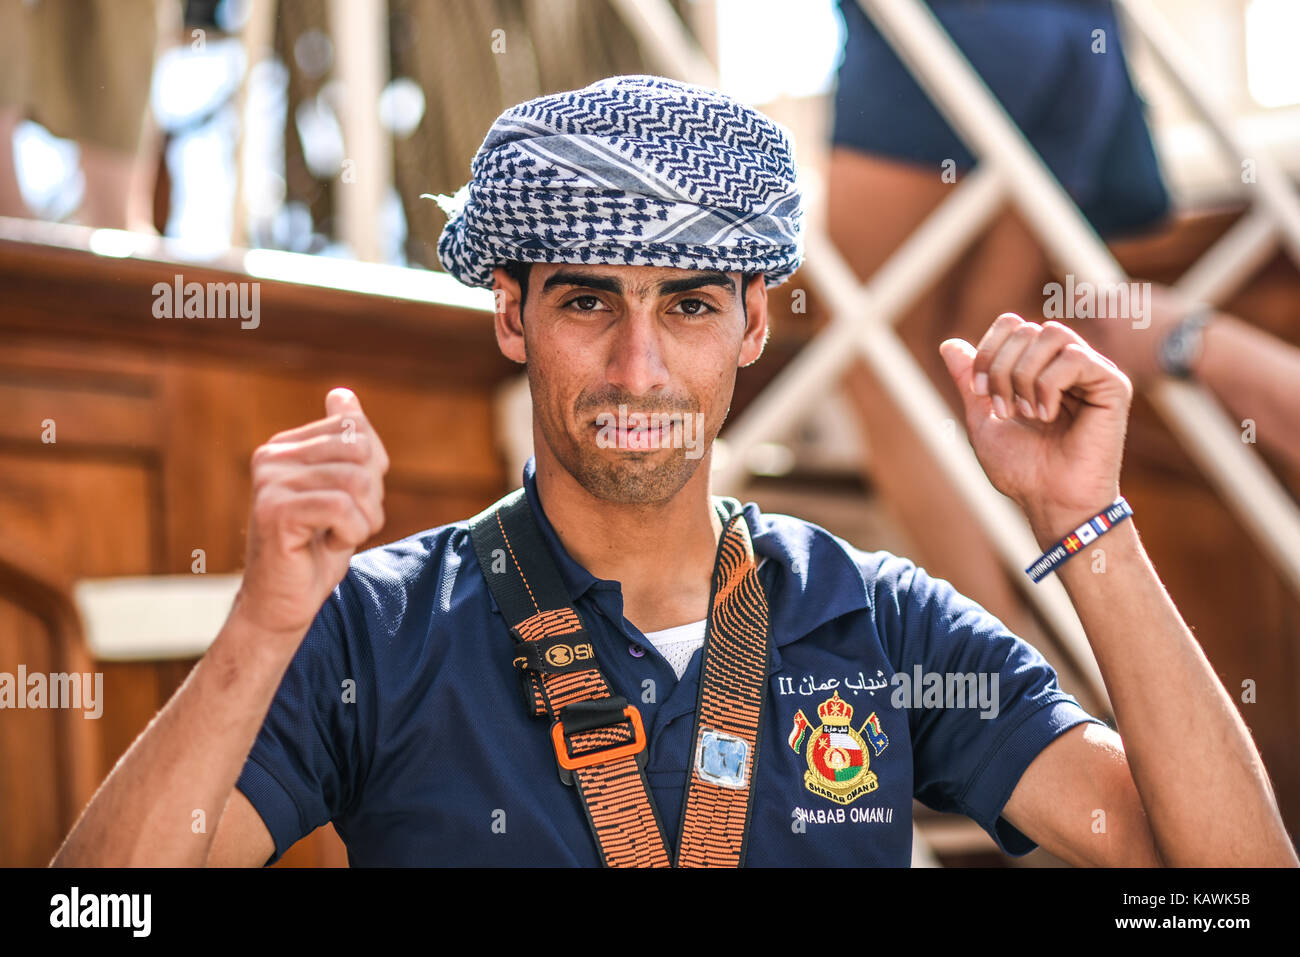 Szczecin, Poland, 6 august 2017: Shabab Oman II crew during a tour of the ship during the finale of The Tall Ships - Stock Image